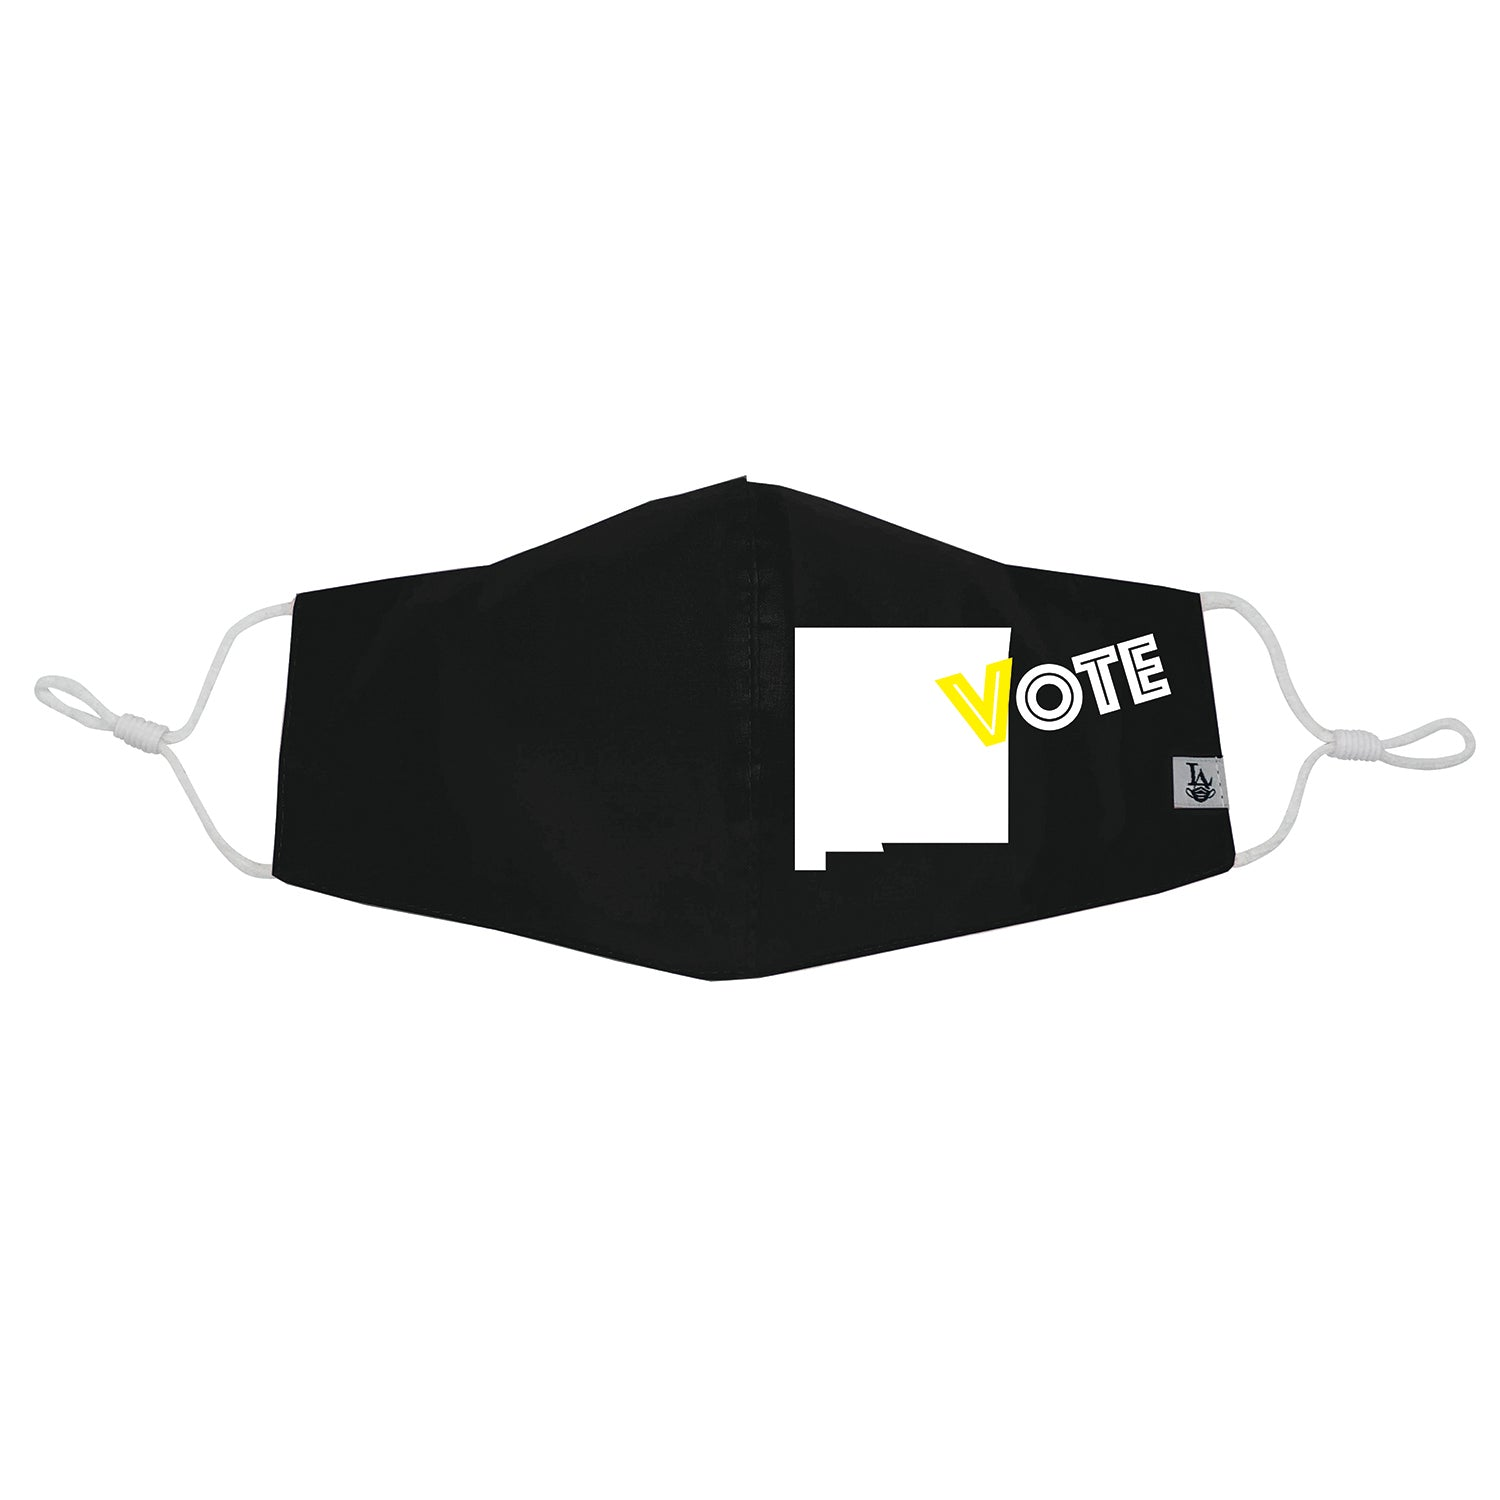 New Mexico VOTE Mask